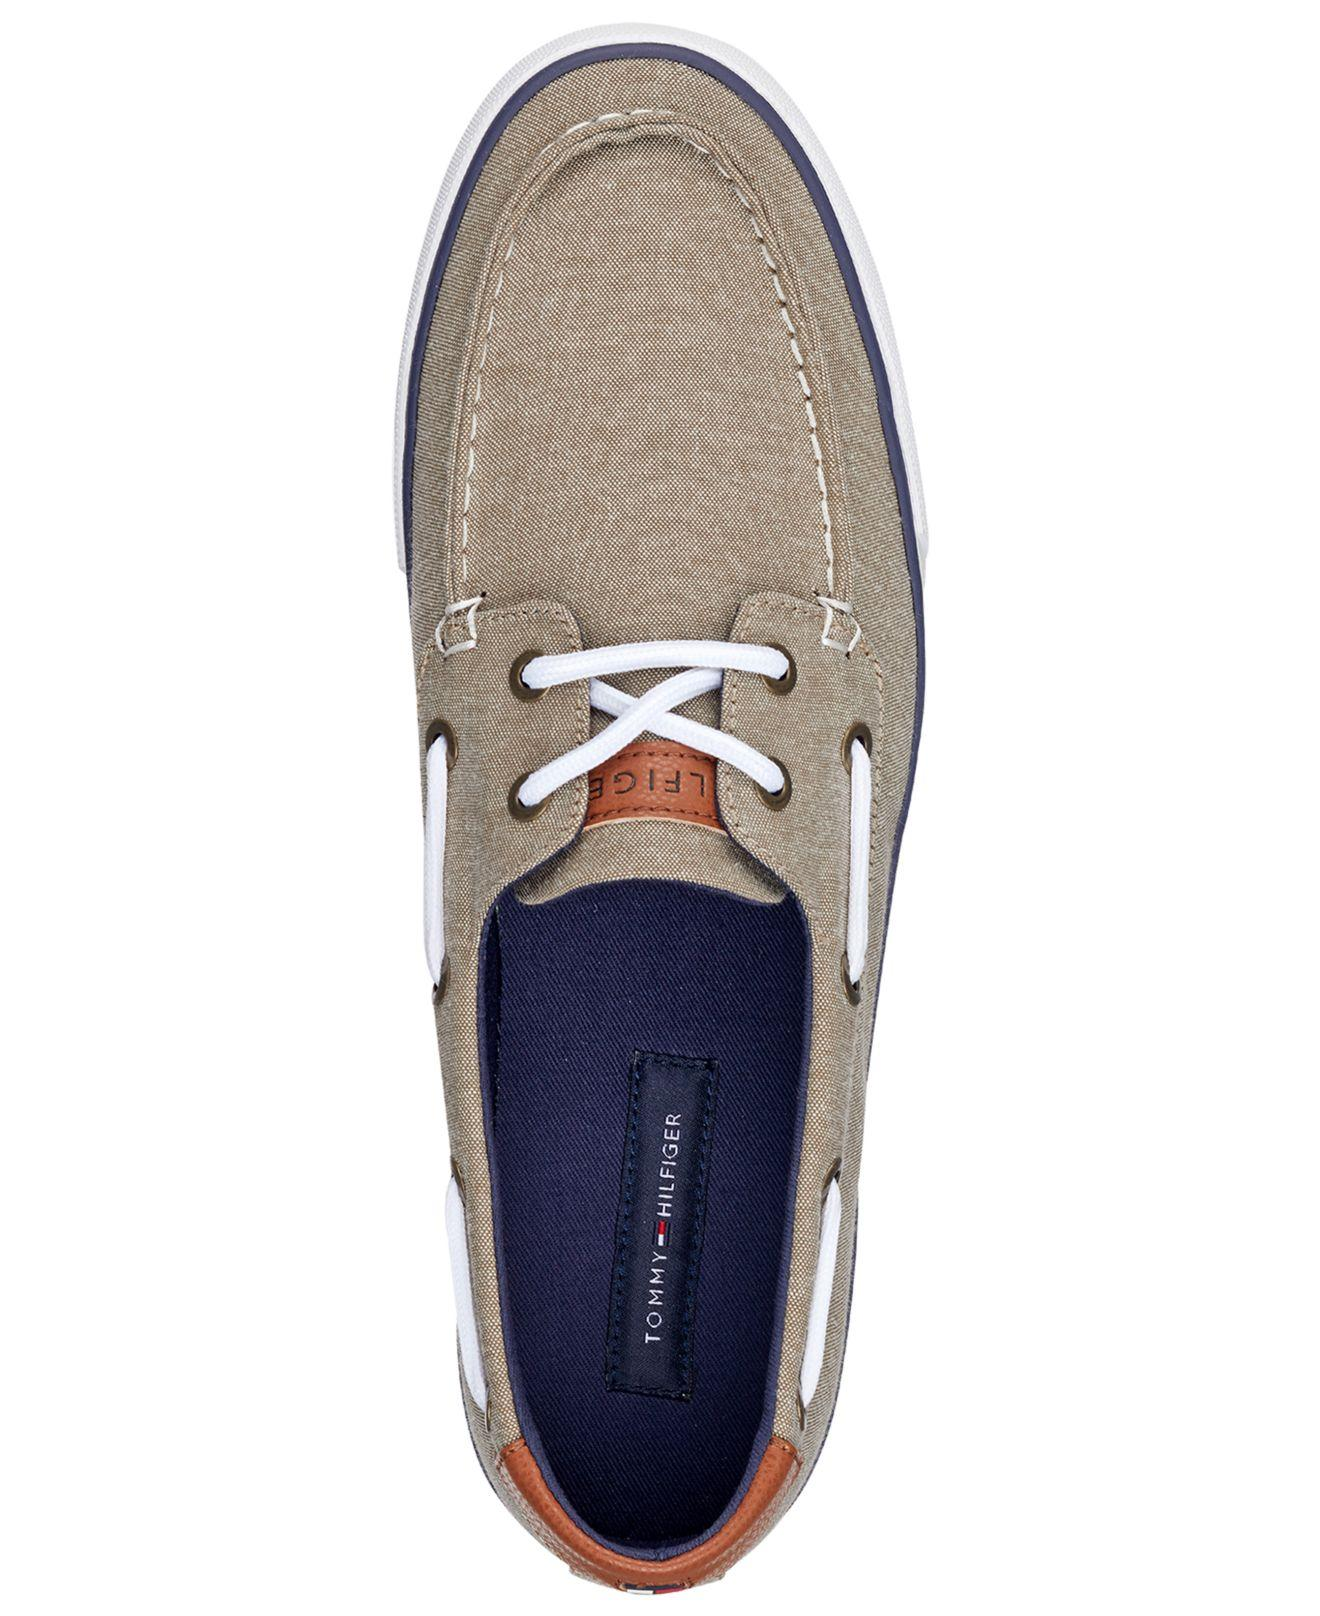 8a739ea20b5aa2 Tommy Hilfiger - Natural Petes Boat Shoes for Men - Lyst. View fullscreen